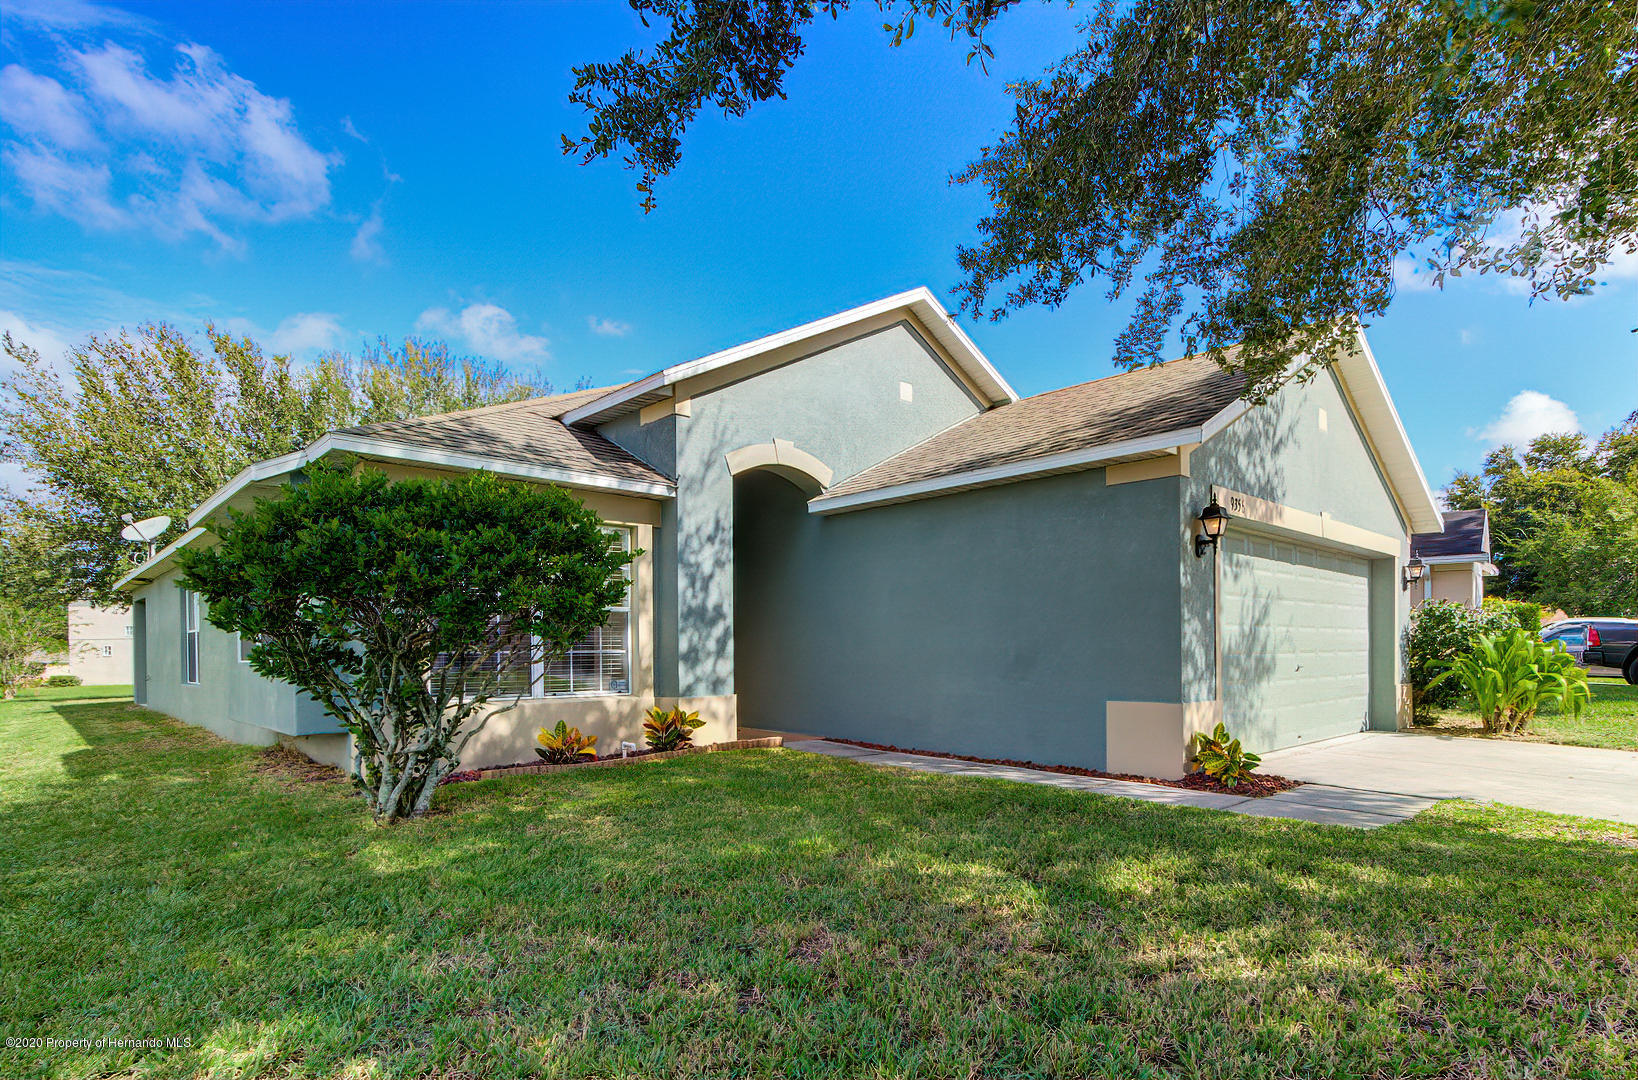 Details for 9356 Southern Charm Circle, Brooksville, FL 34613